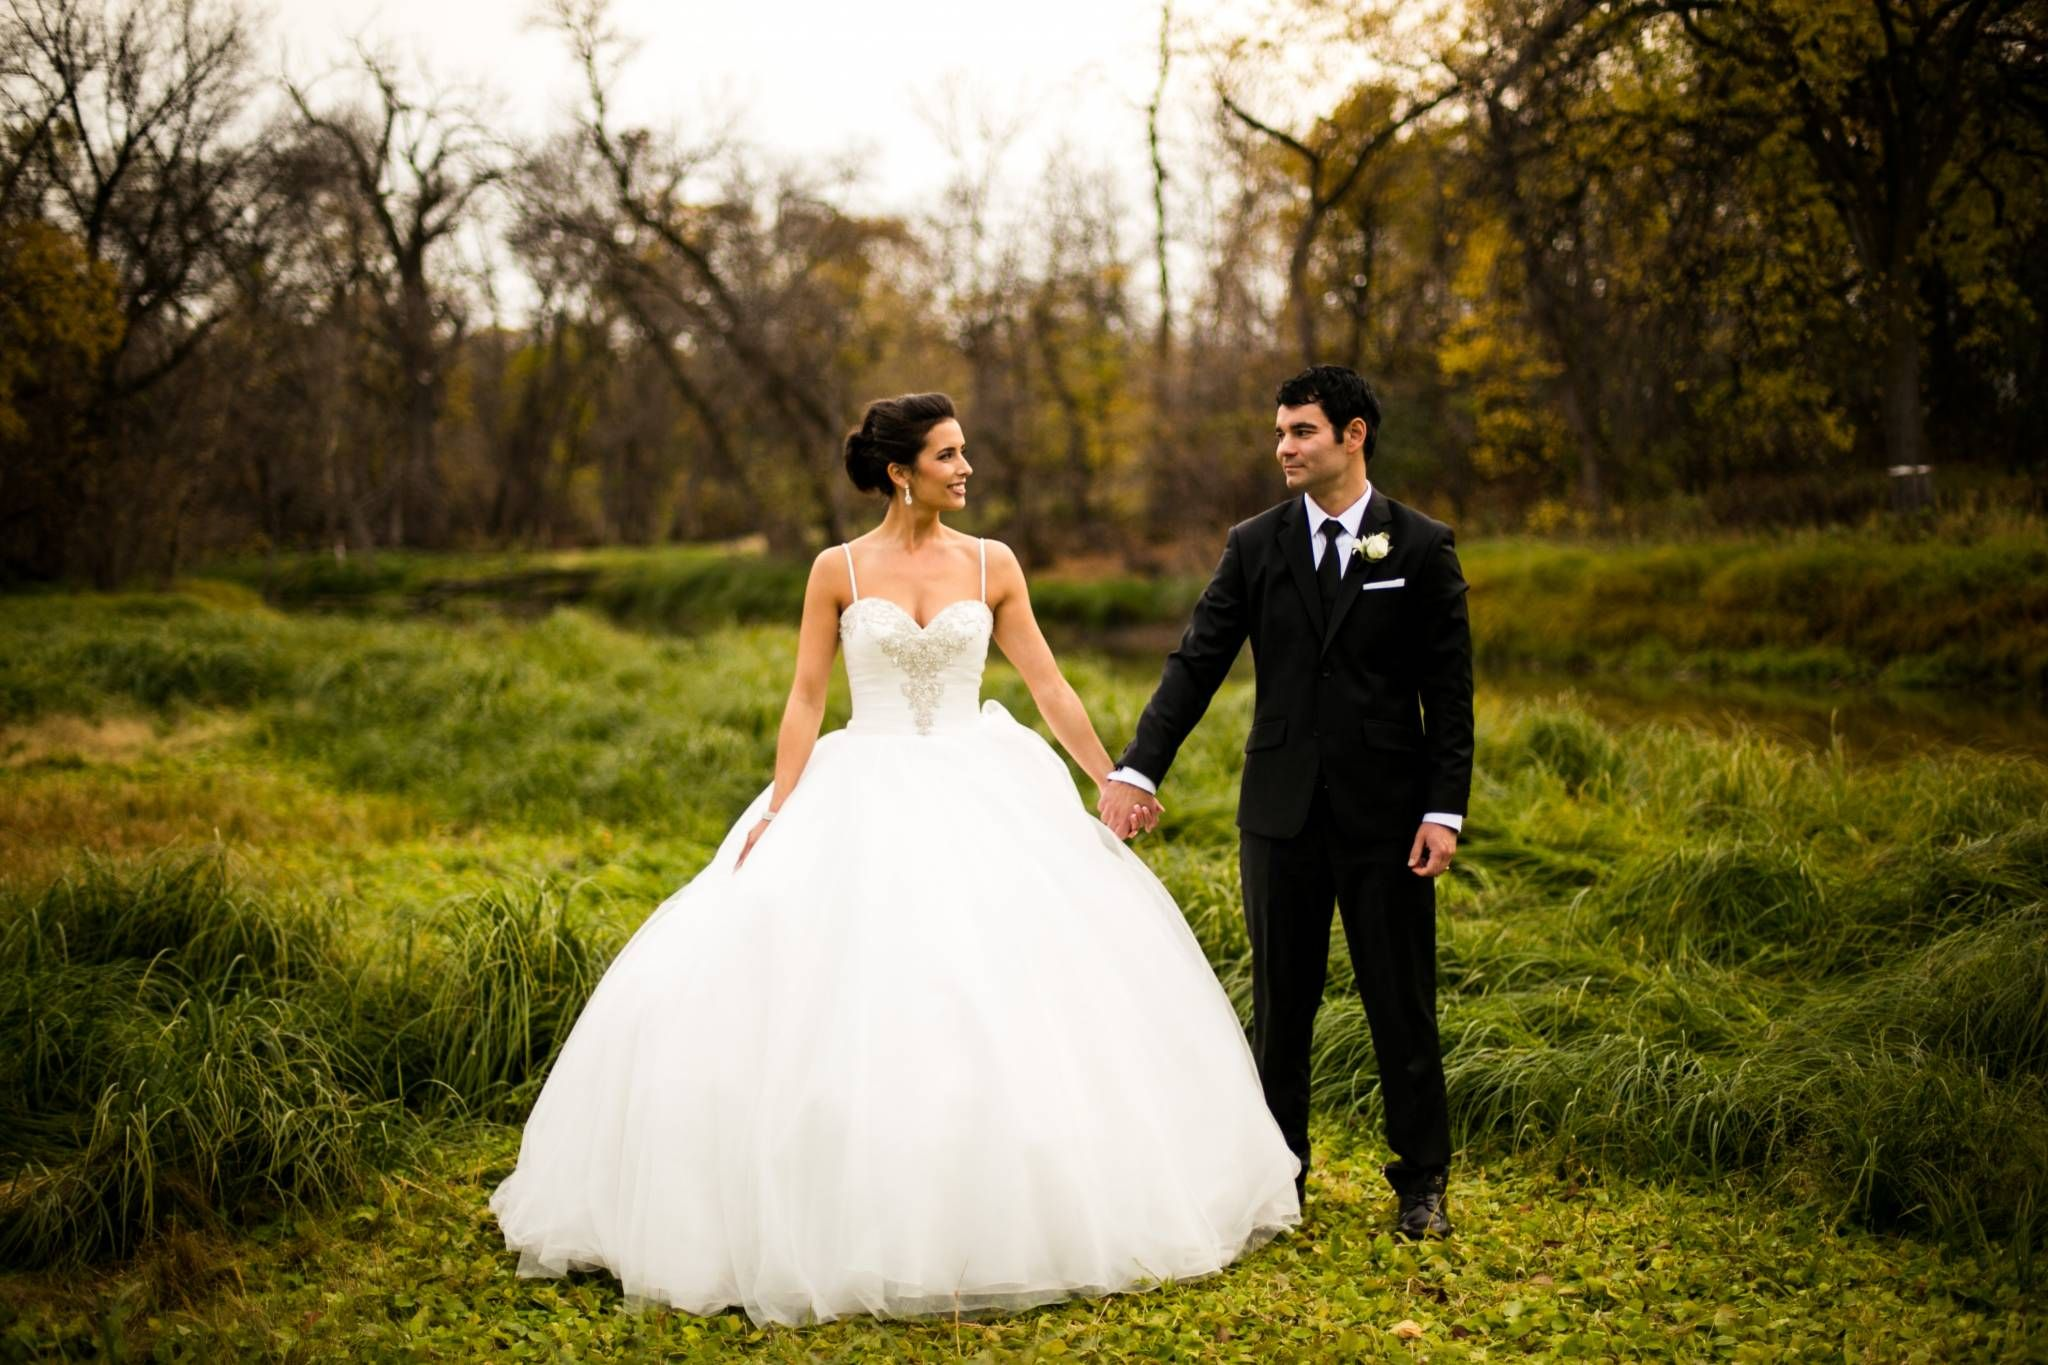 A beautiful wedding at st boniface by moore photography via st